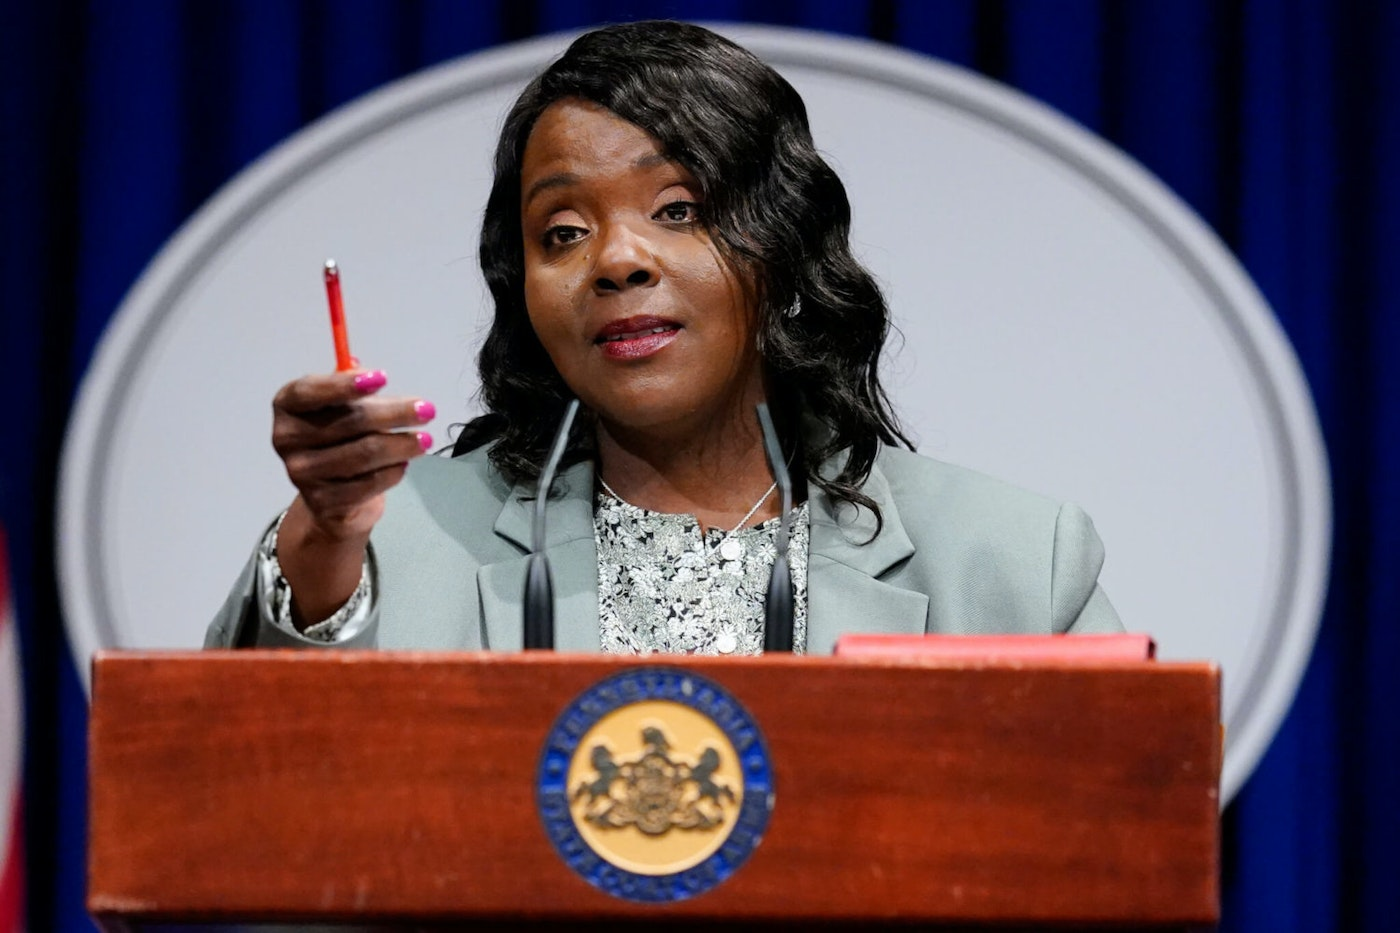 Acting Secretary of State Veronica Degraffenreid speaks with members of the media during a news conference at the Pennsylvania Capitol in Harrisburg on May 26, 2021. (AP Photo/Matt Rourke)